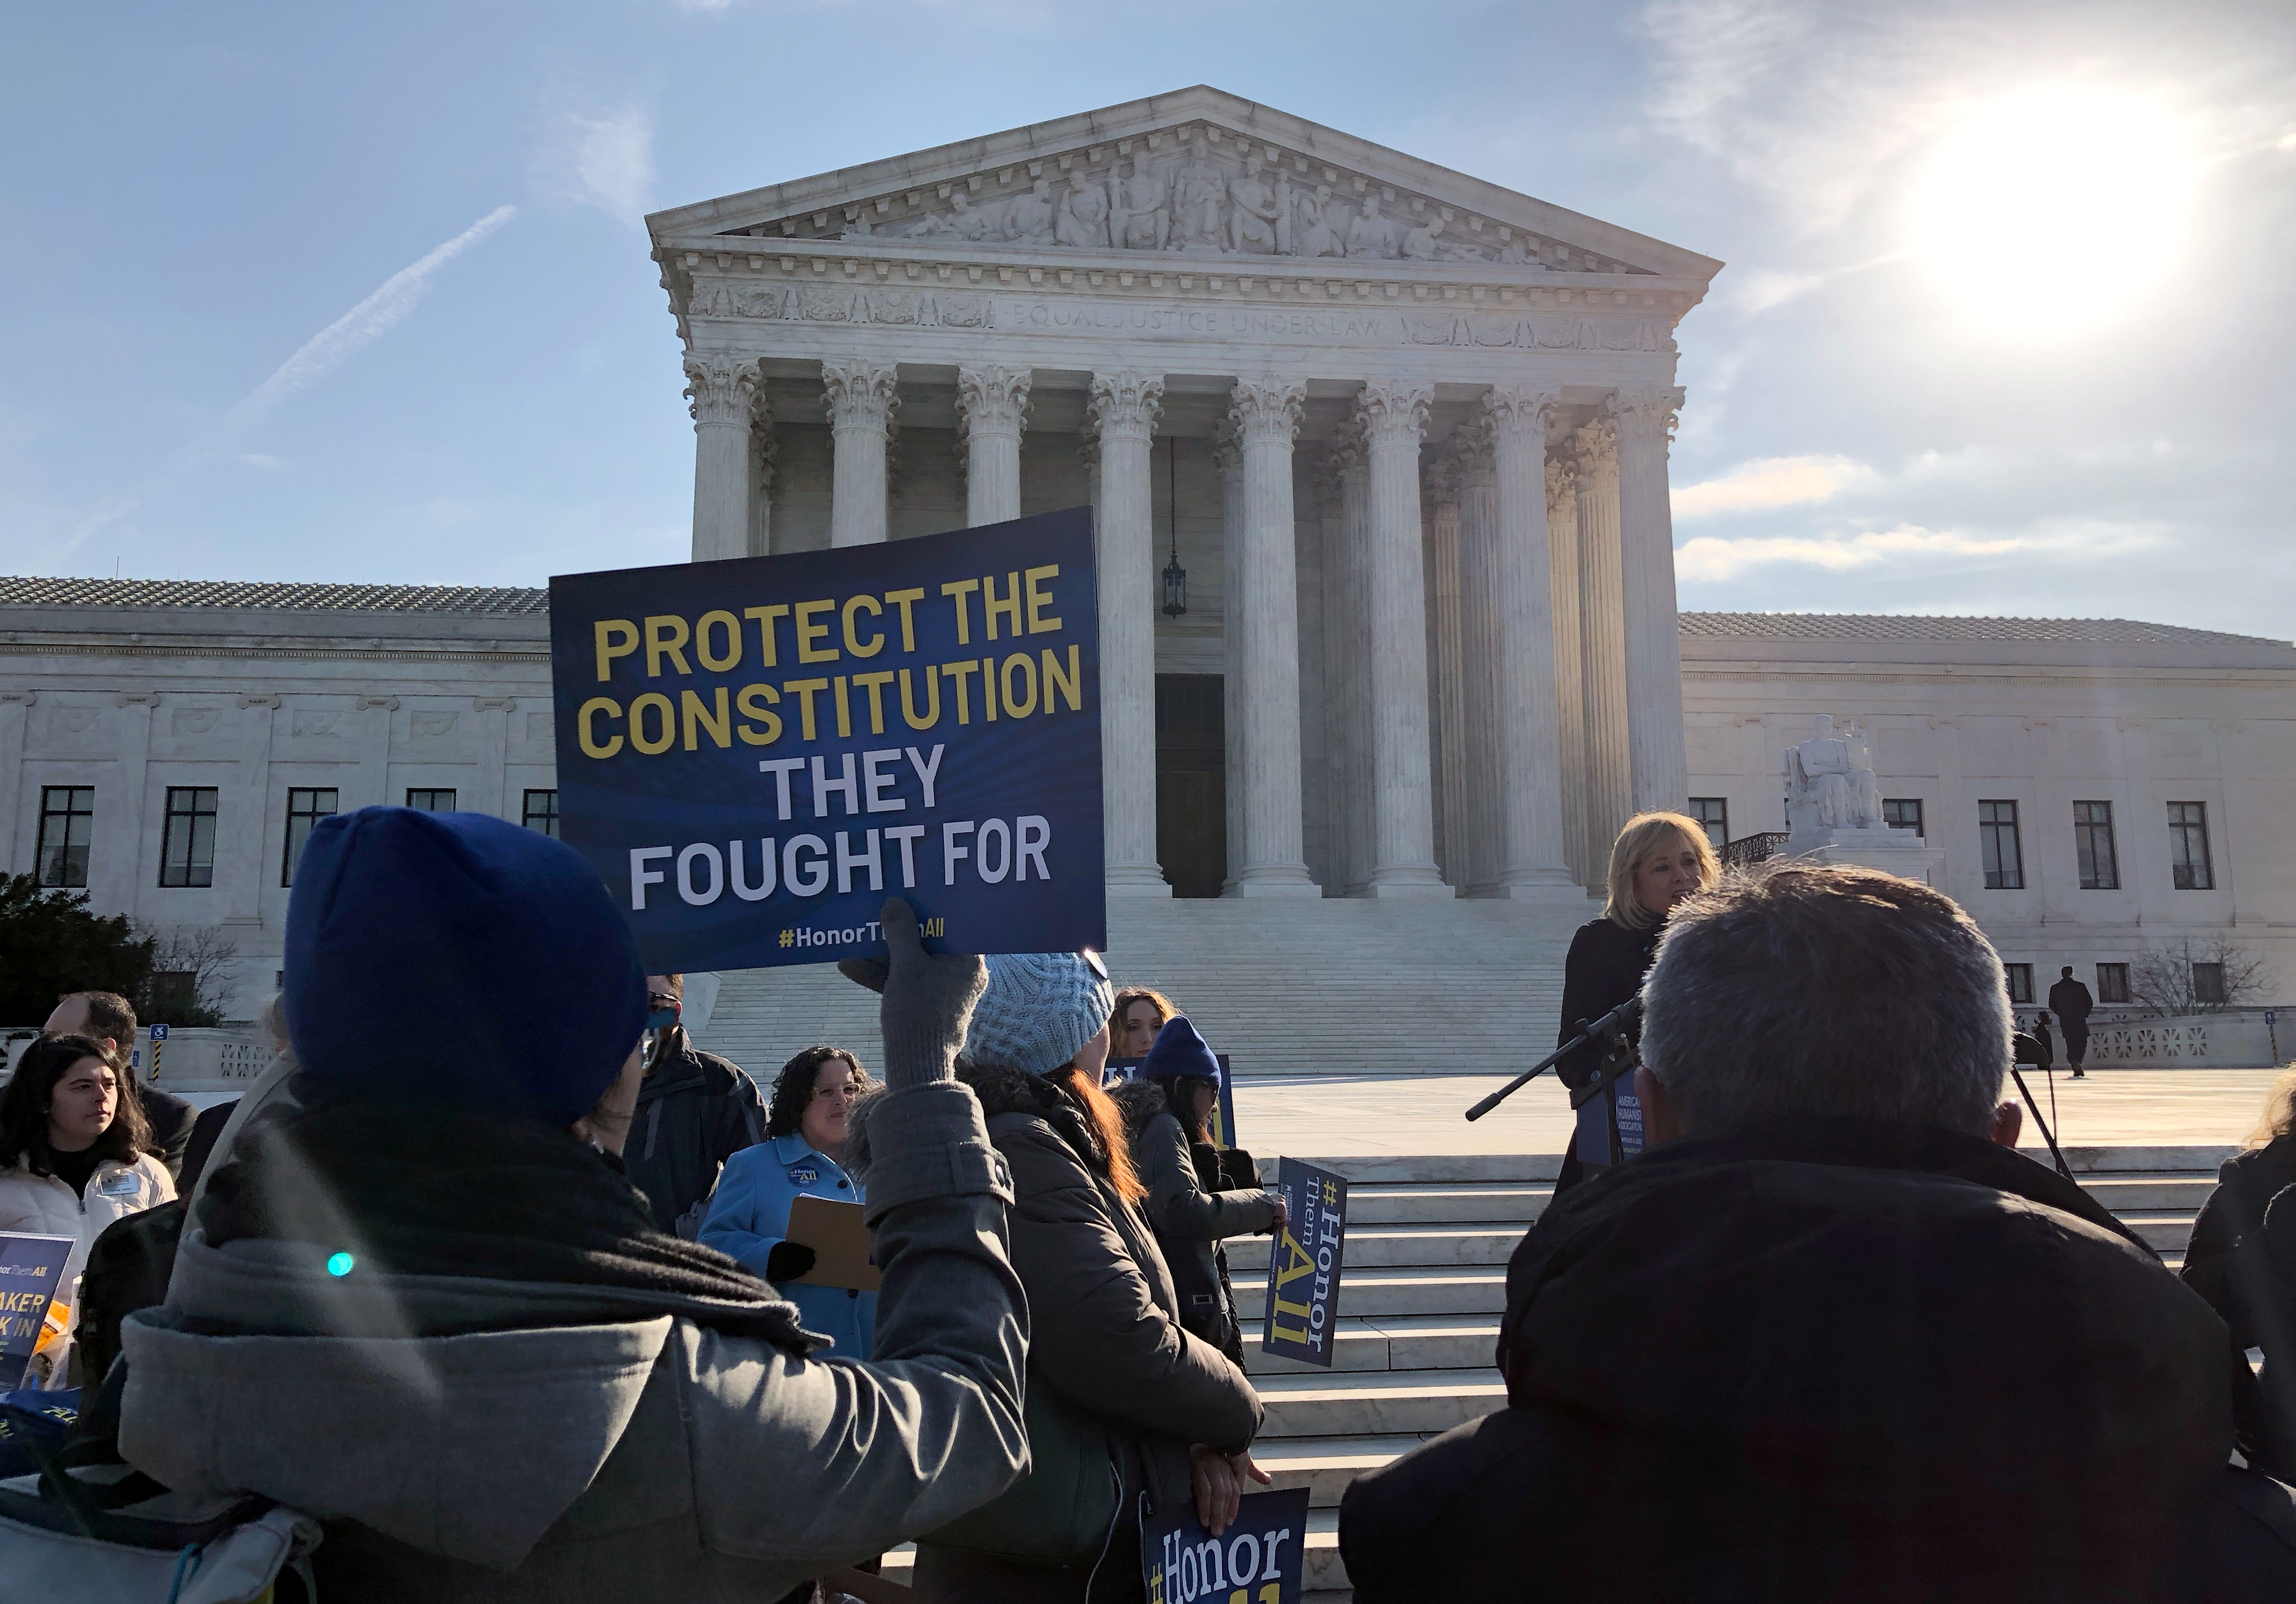 Advocates for the separation of church and state participate in a rally outside the U.S. Supreme Court ahead of oral arguments over whether a concrete cross commemorating servicemen killed in World War One in Bladensburg, Maryland, is an unconstitutional government endorsement of religion, in Washington, U.S., February 27, 2019. REUTERS/Lawrence Hurley